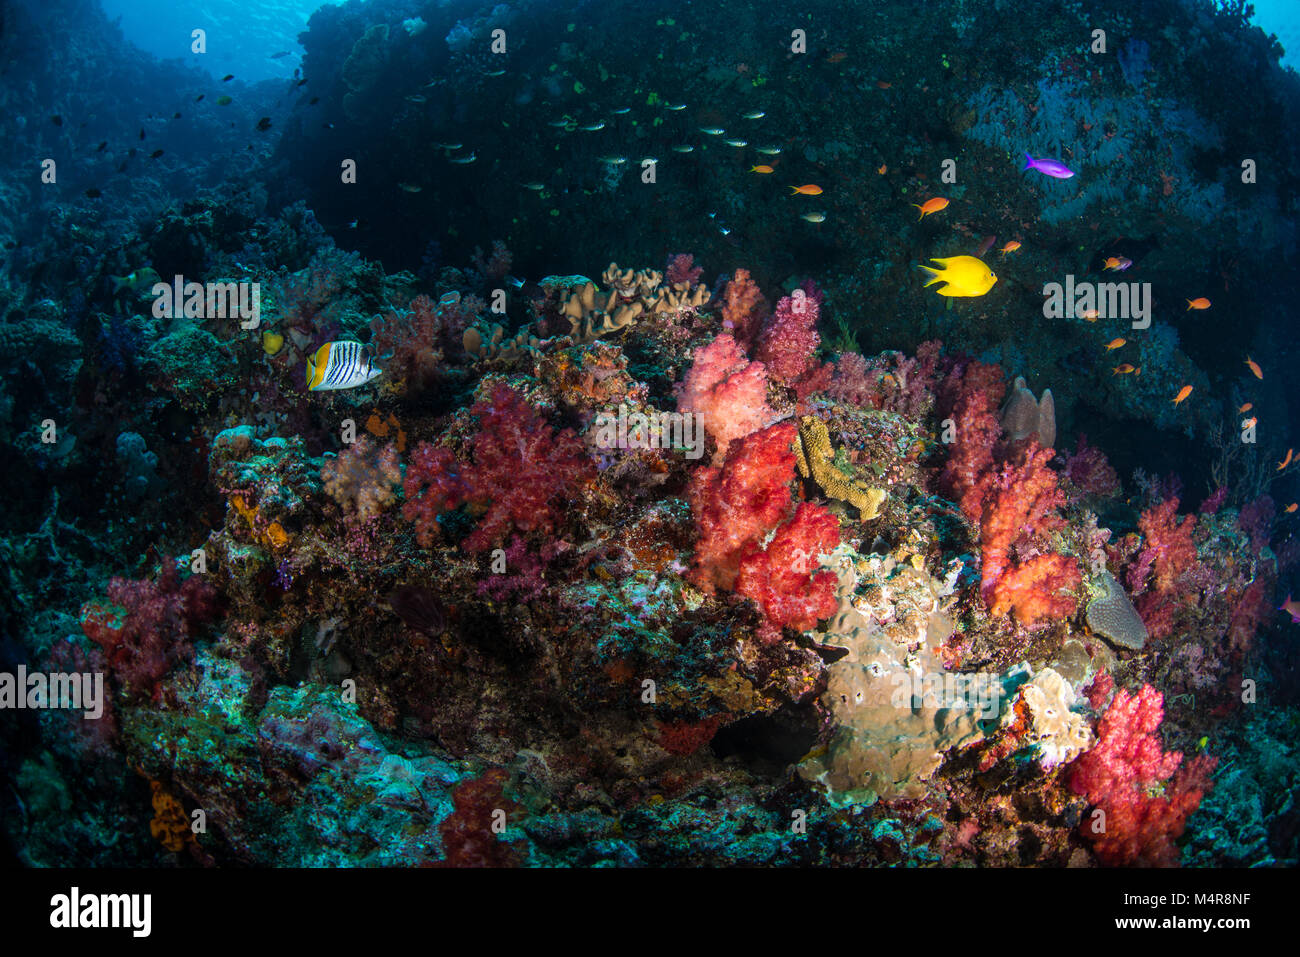 Yellow damsel fish and other fish swimming over a coral reef with soft corals - Stock Image